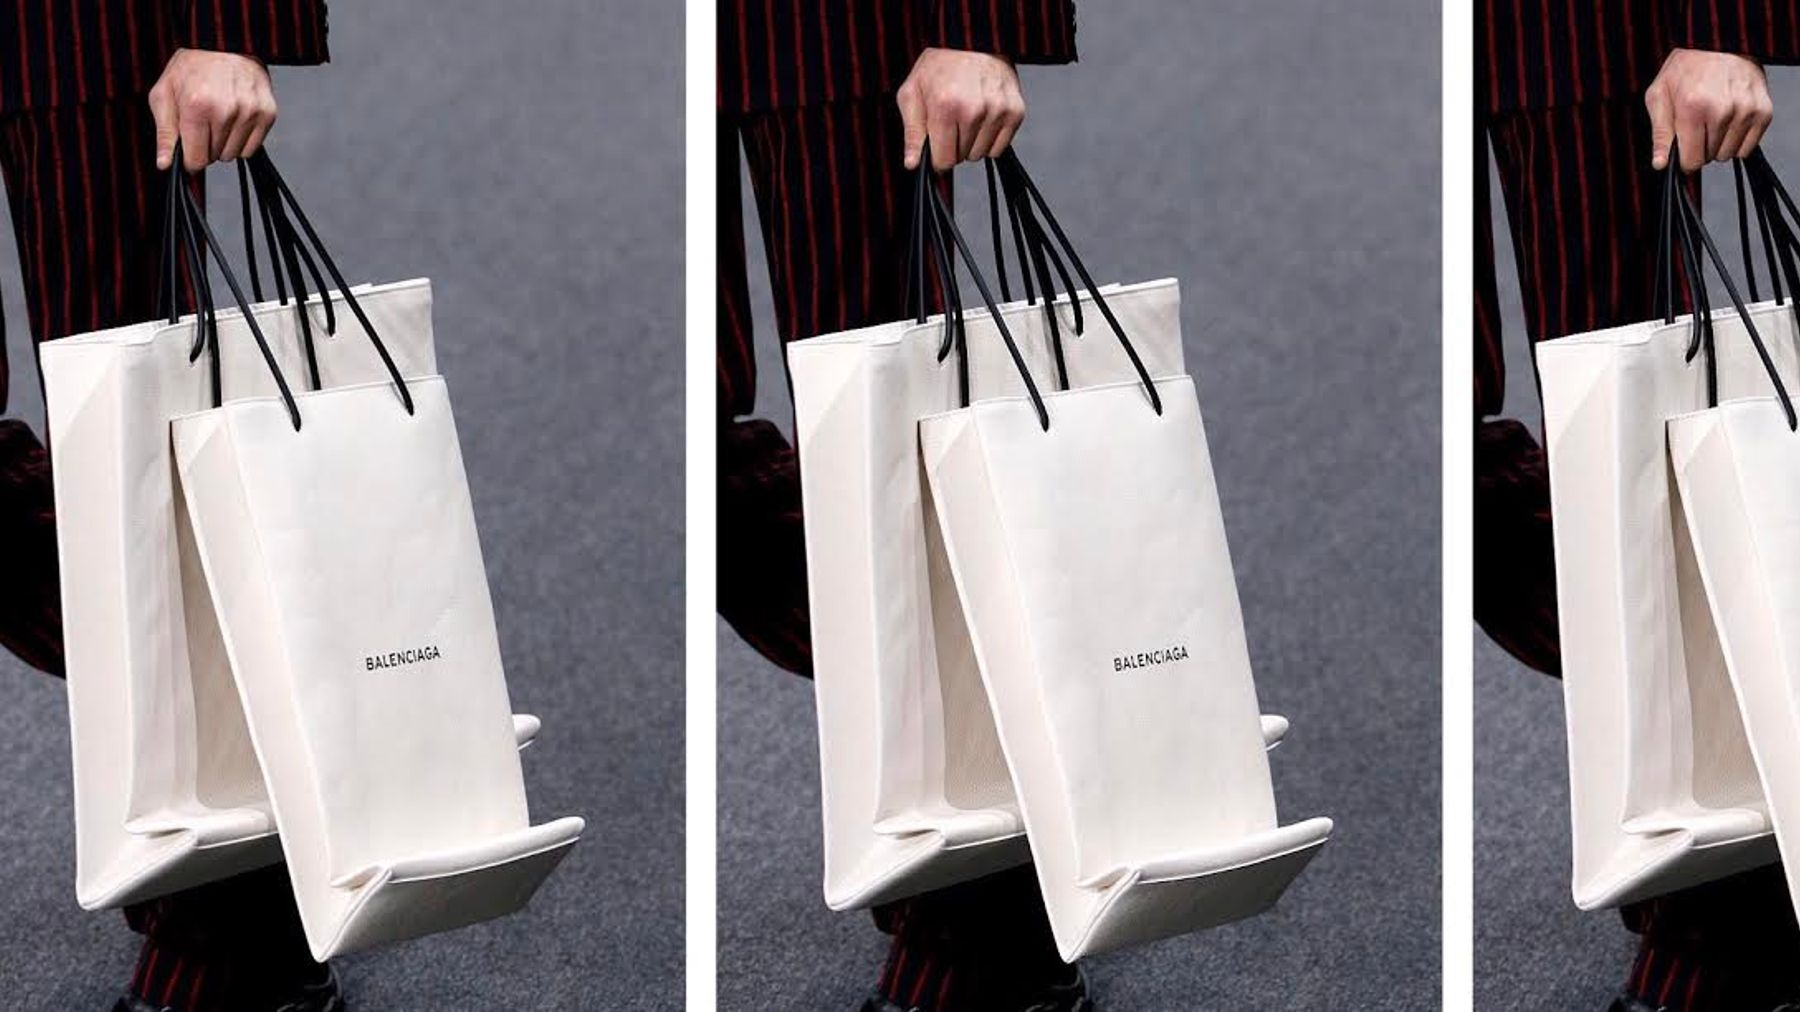 a1f5ac26ed86c Balenciaga Trolls The Internet With Another Sell-Out Bag | Grazia